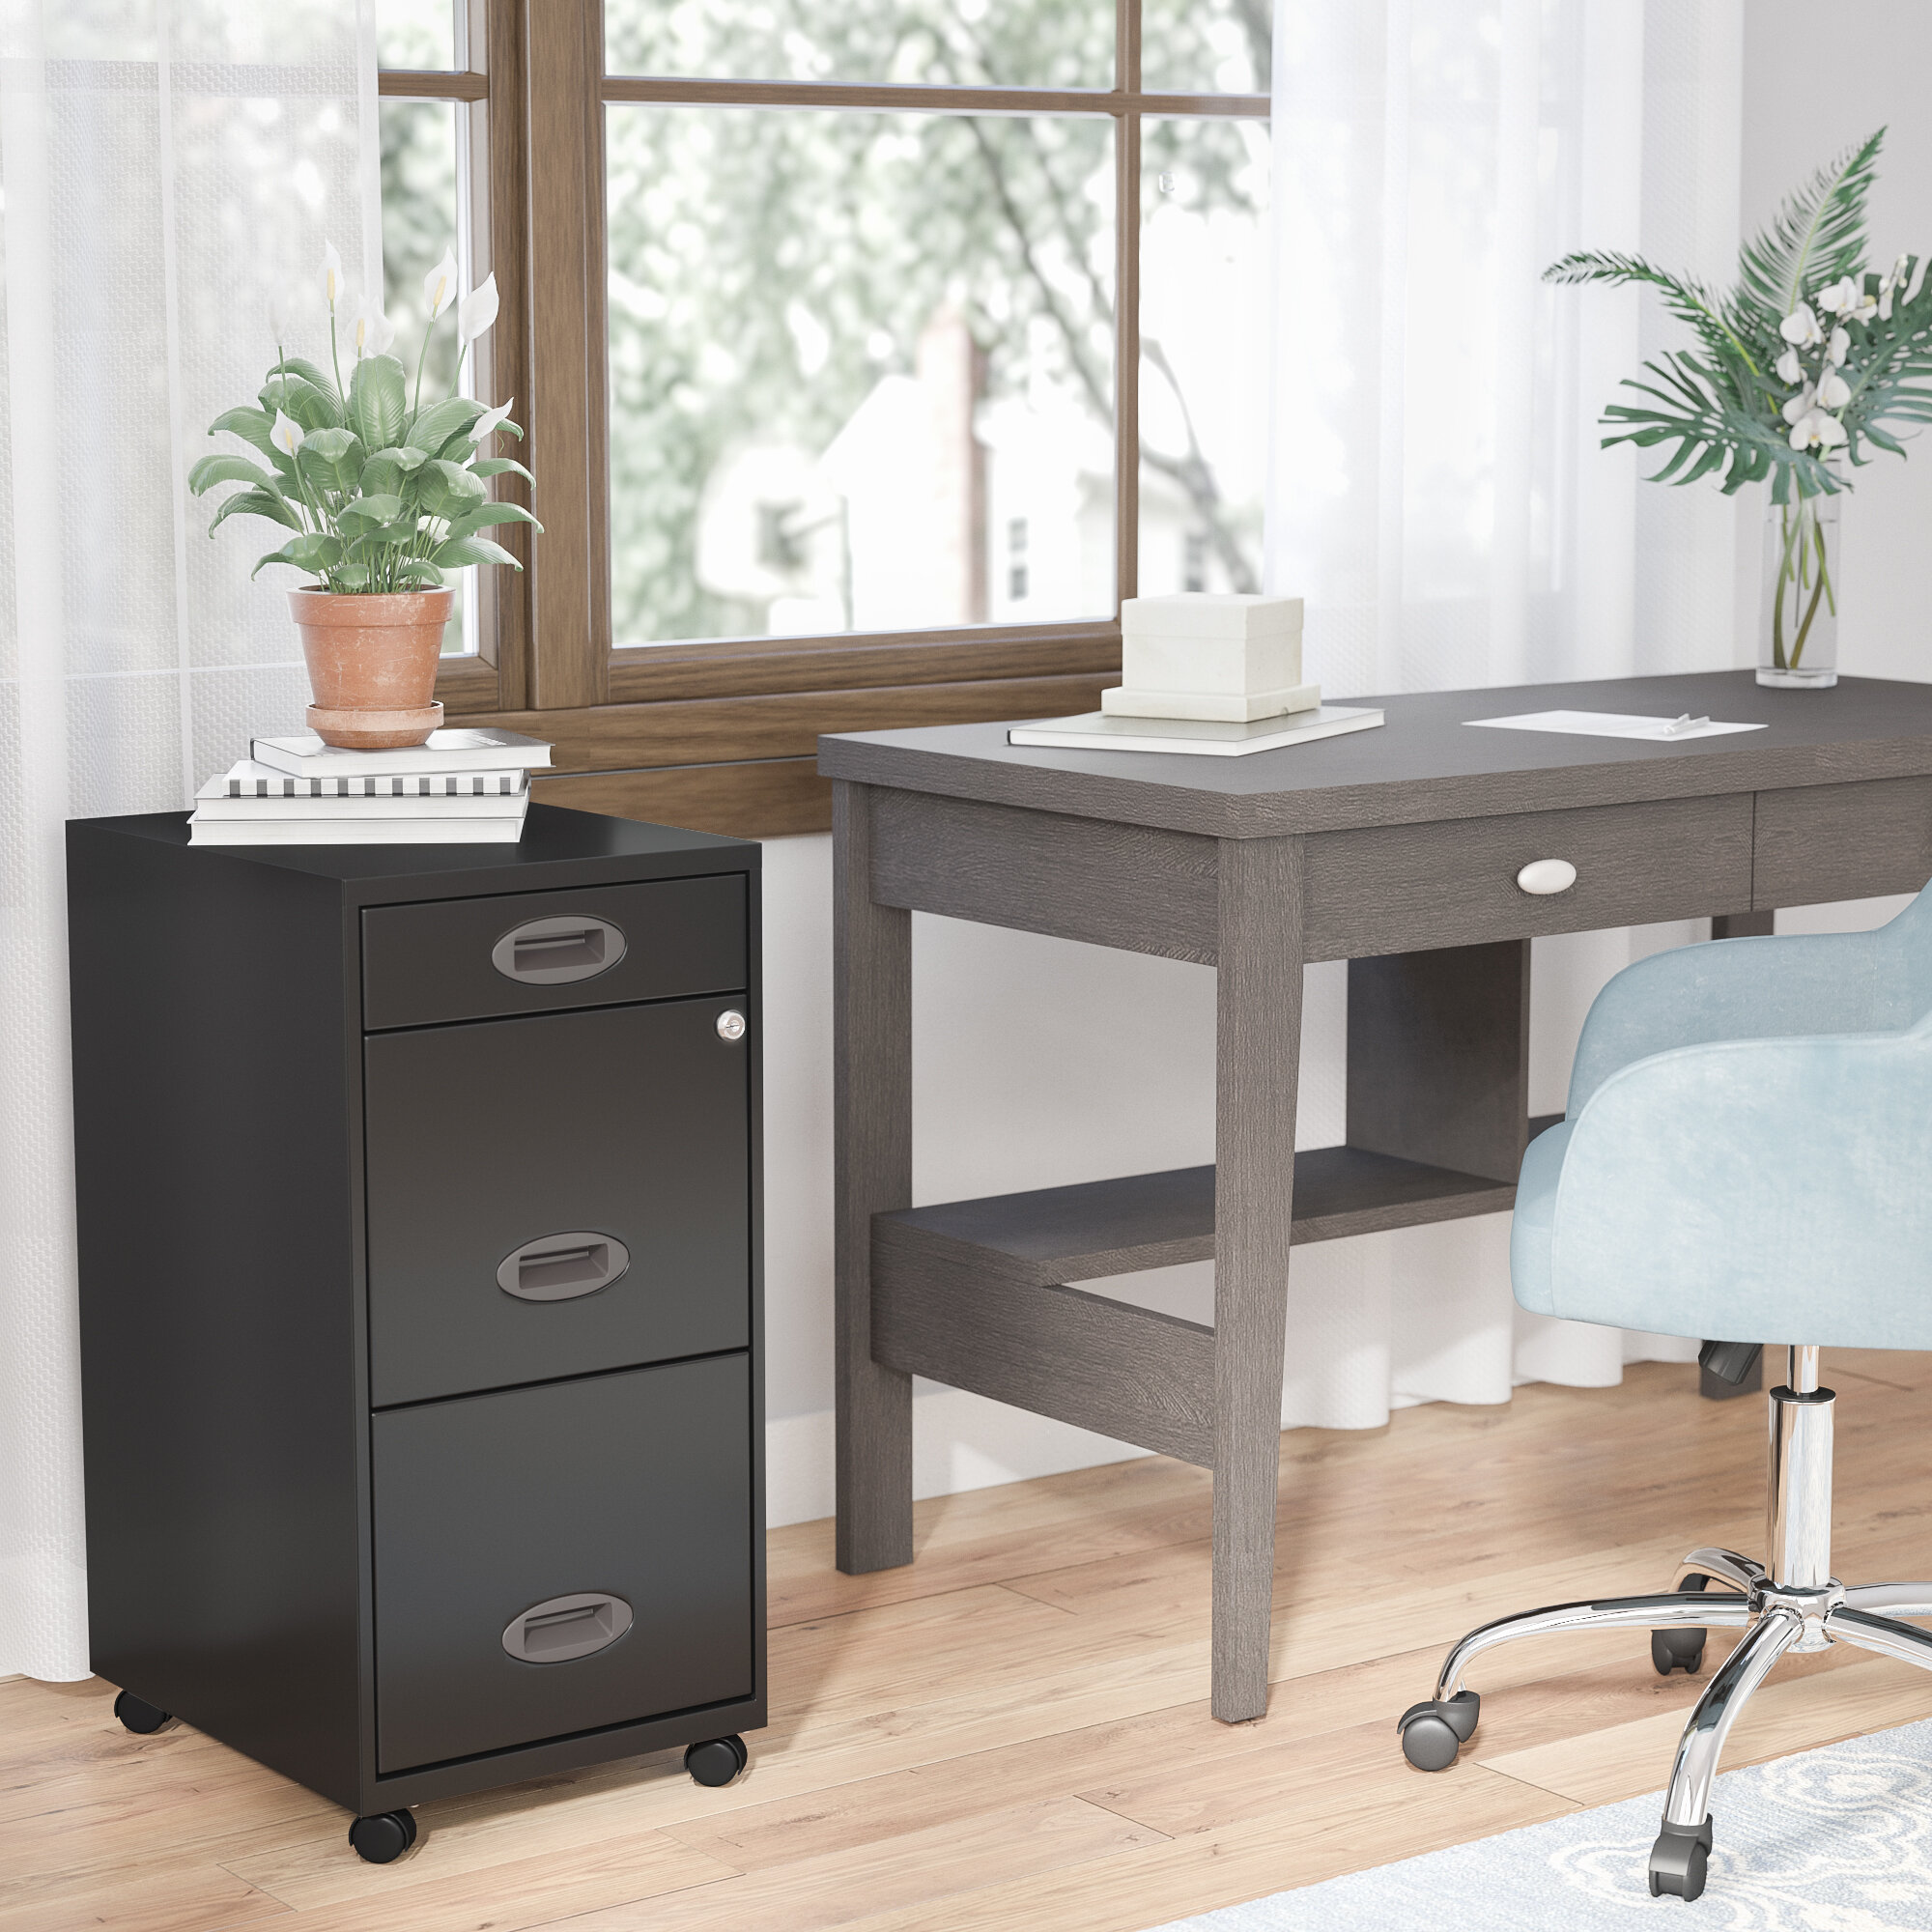 drawers with most small cabinet filing office imagination exceptional four desk drawer under locking lock cupboard